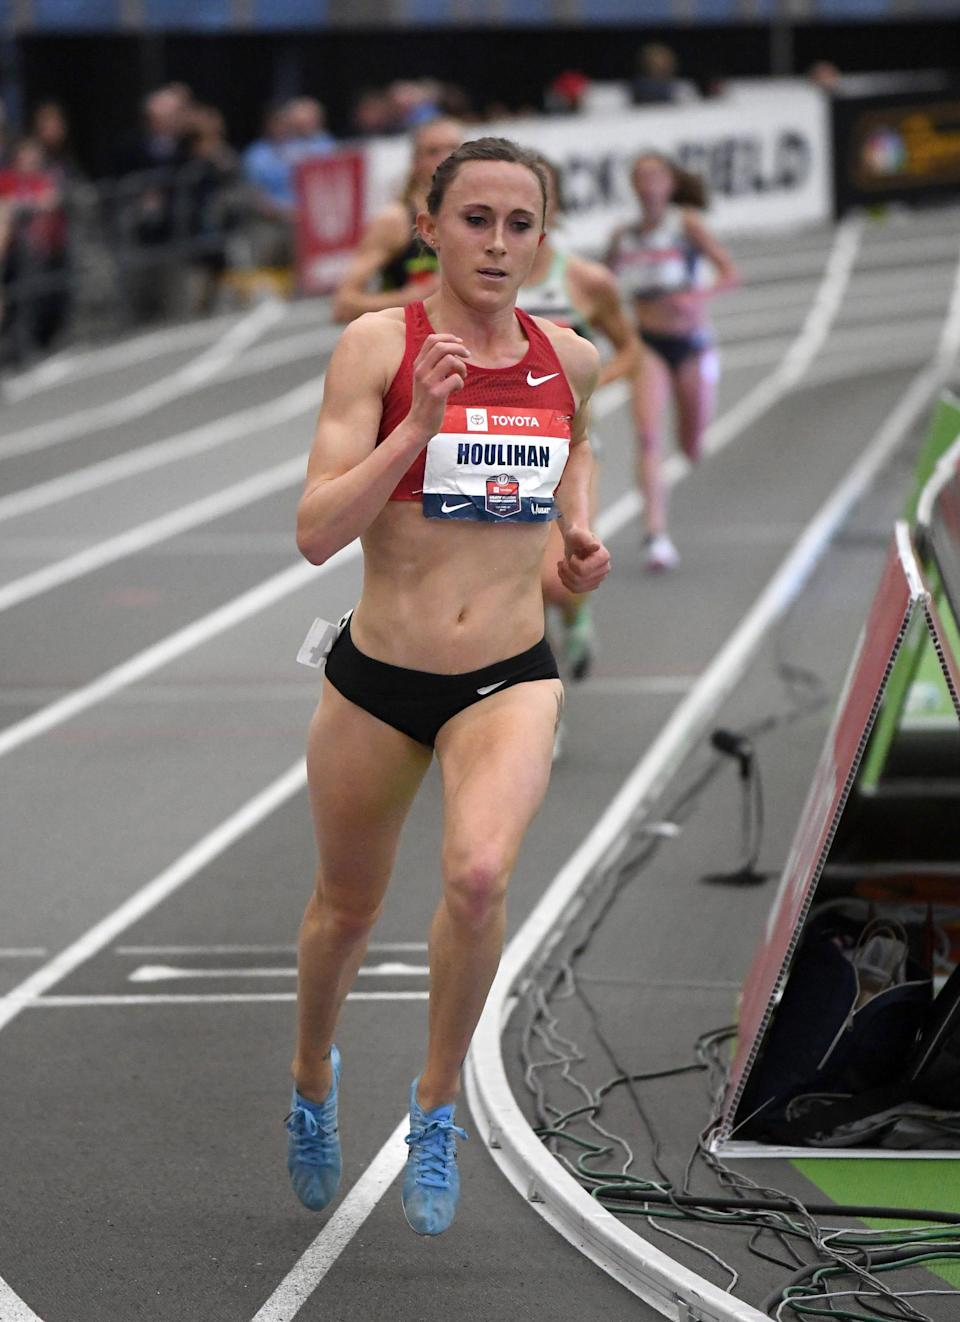 American middle-distance runner Shelby Houlihan has been banned for four years after testing positive for an anabolic steroid that she believes came from pork in a burrito.